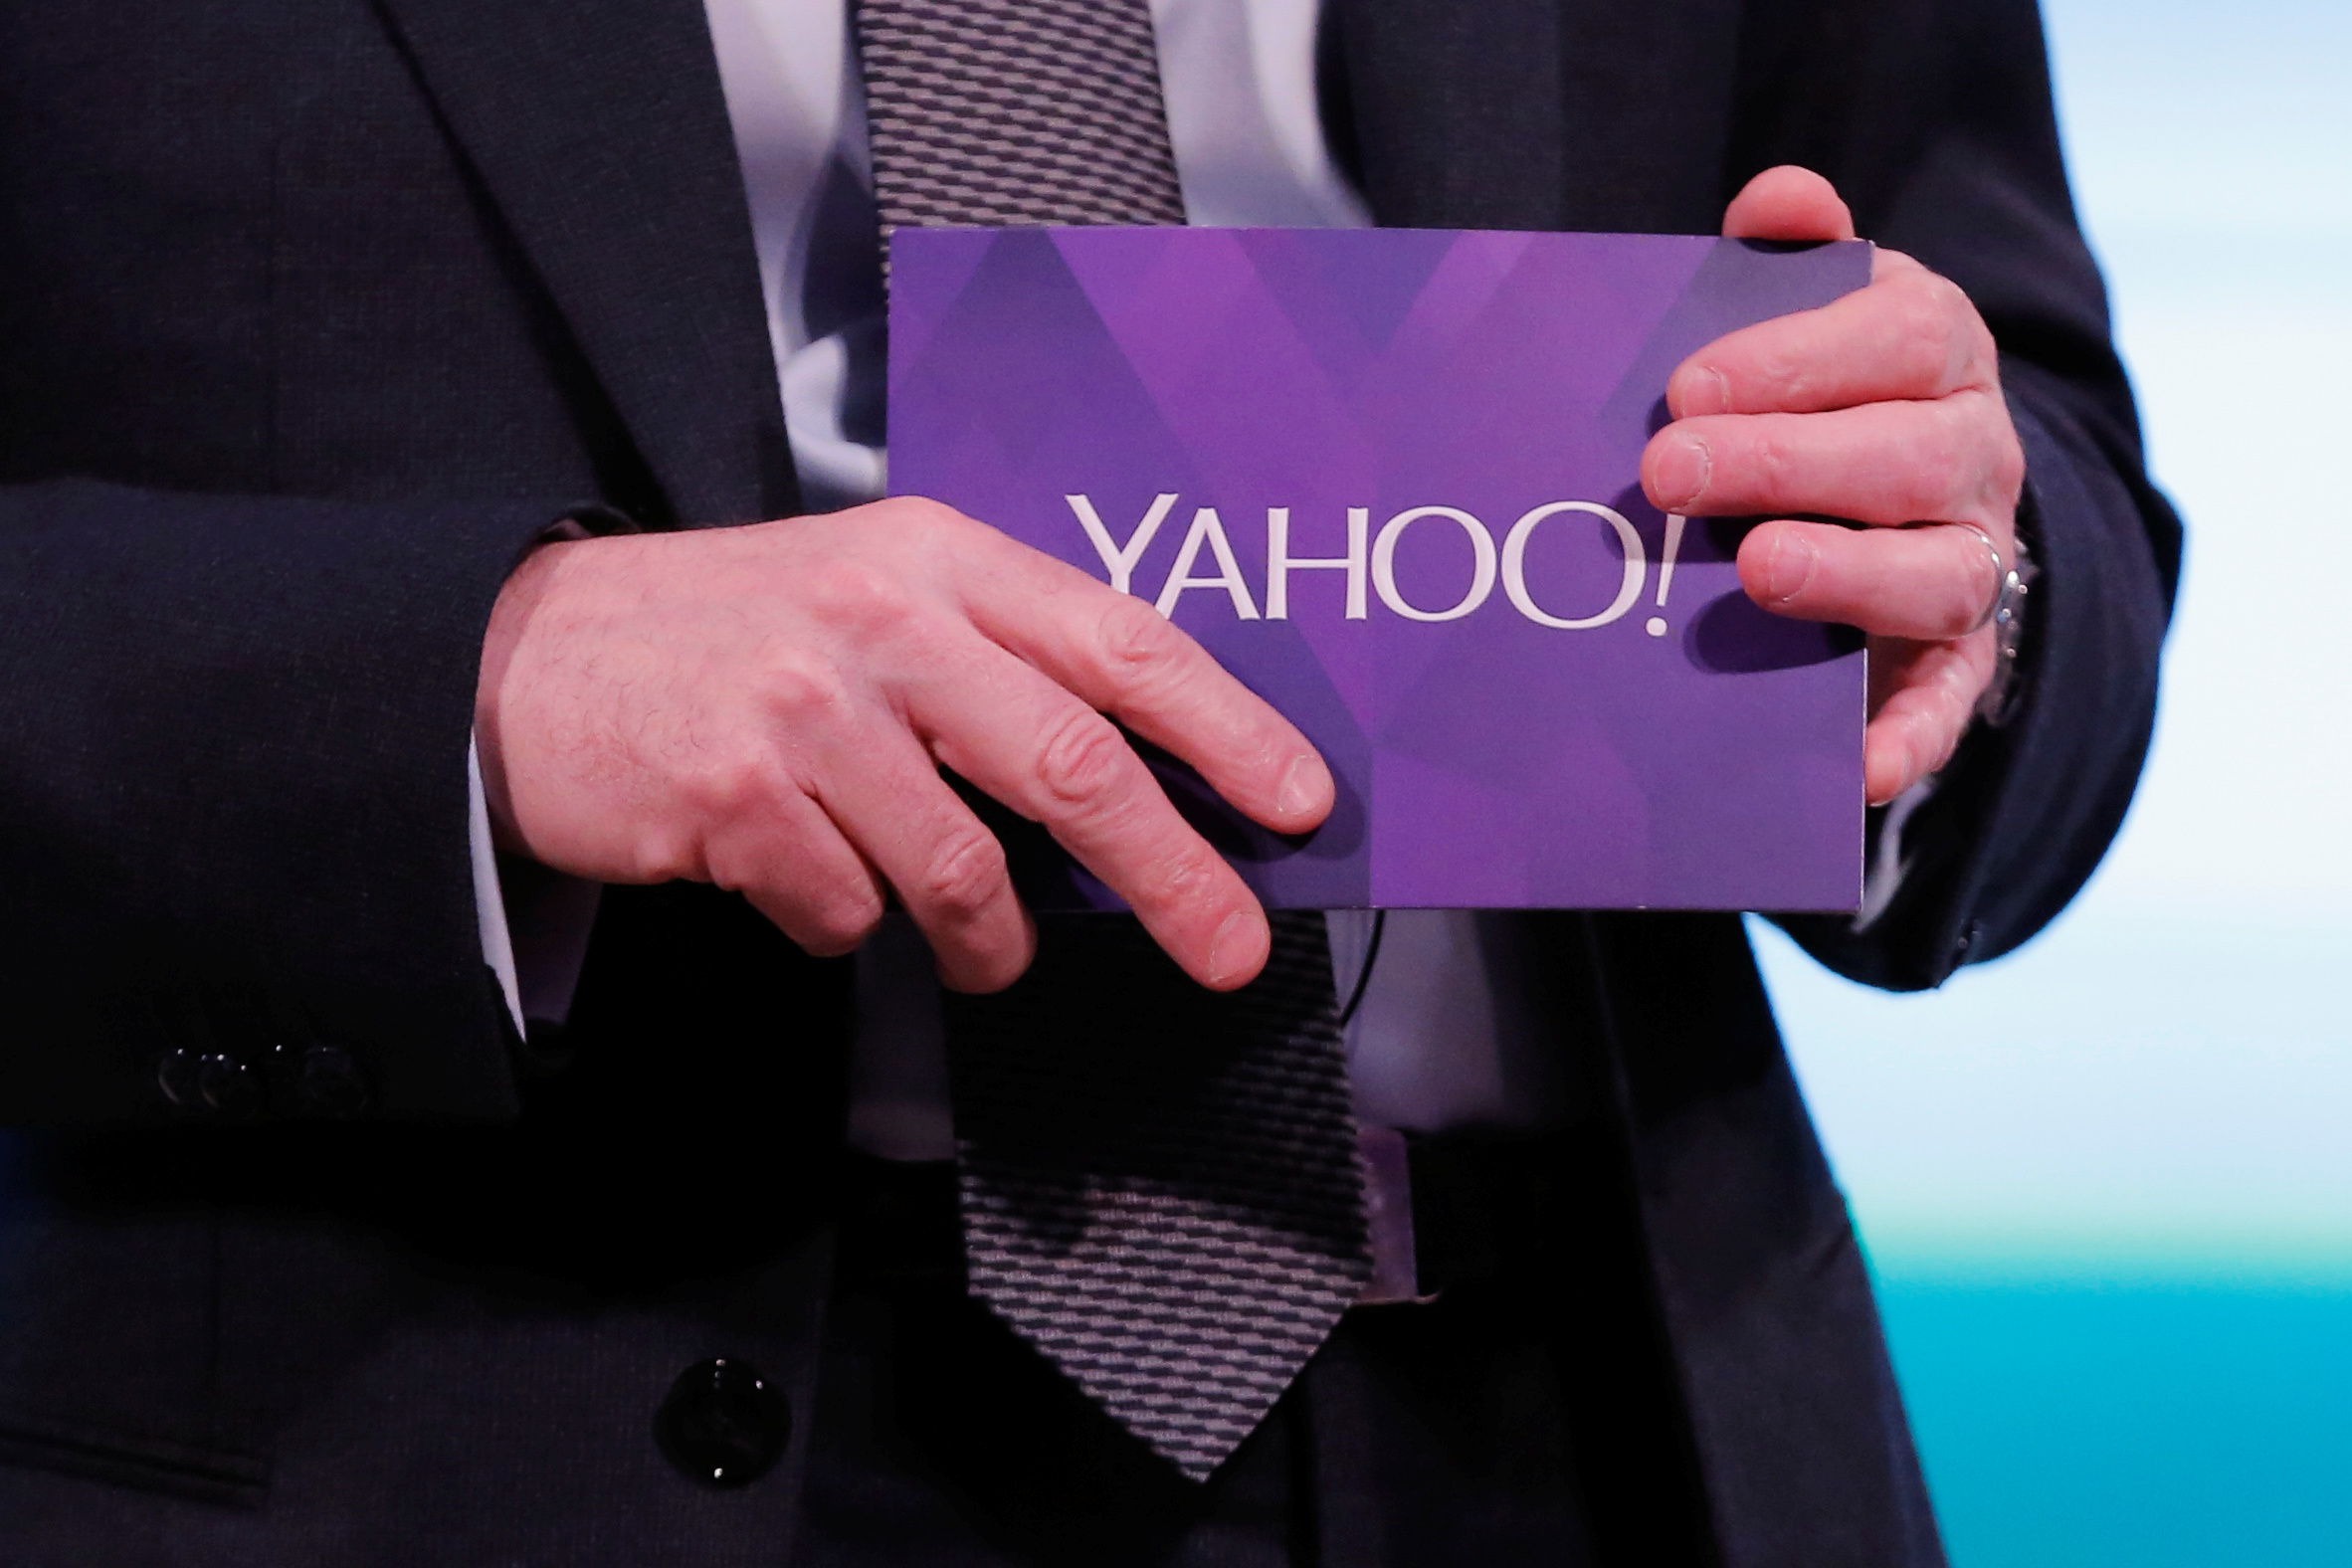 Hacks Will Reportedly Cost Yahoo $250 Million